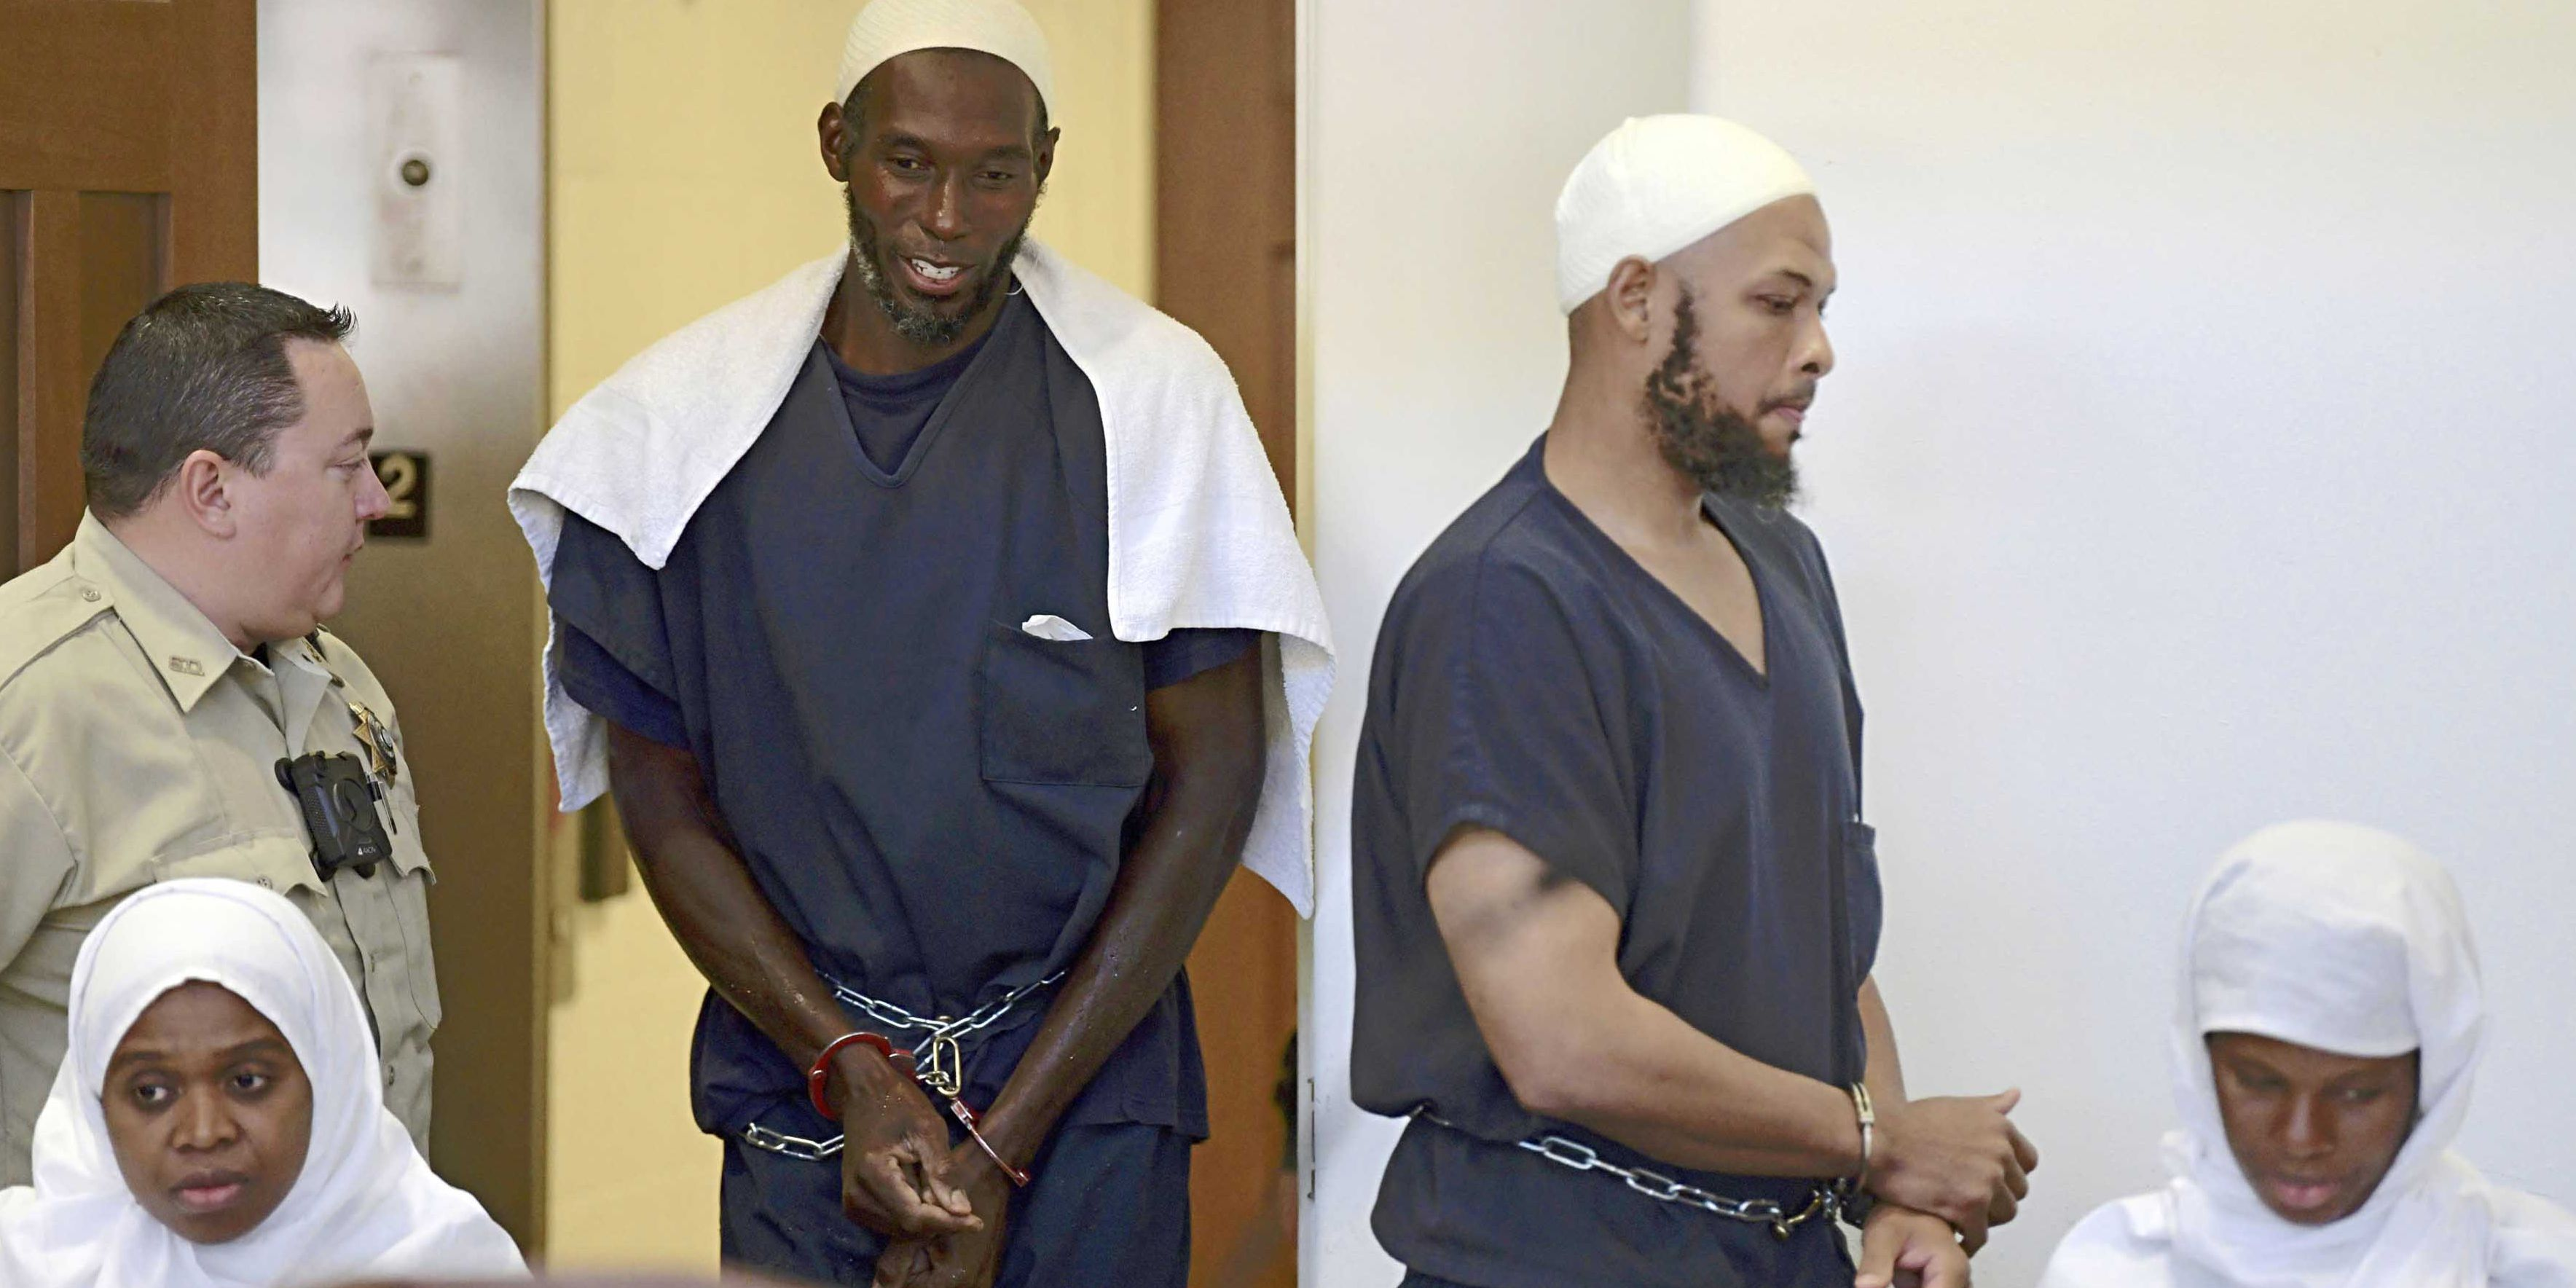 5 charged in New Mexico terrorism case because they are Muslims, attorneys say